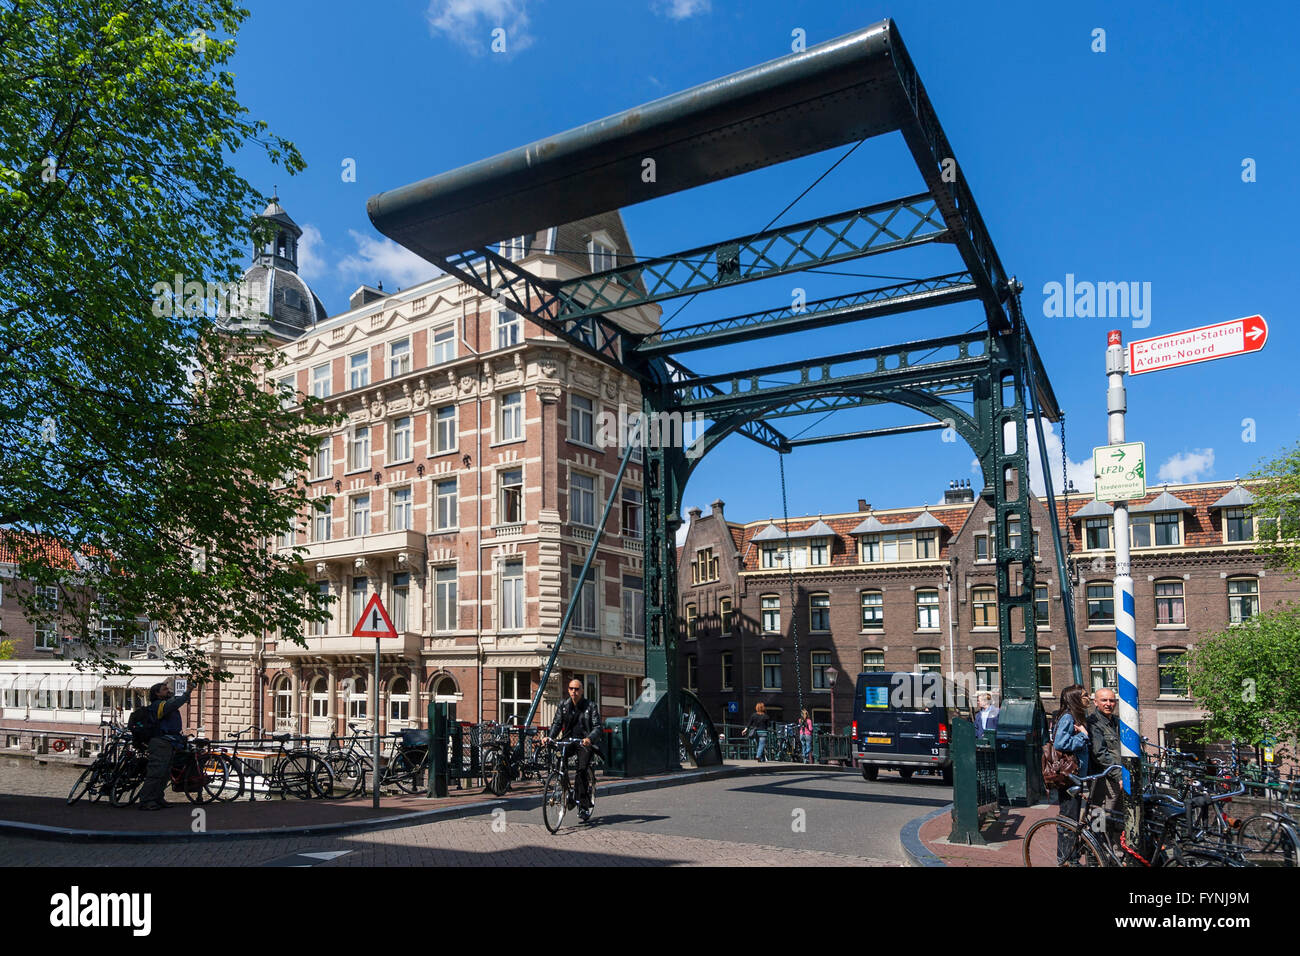 Pont, NH Doelen Hotel, Amsterdam, Pays-Bas Photo Stock